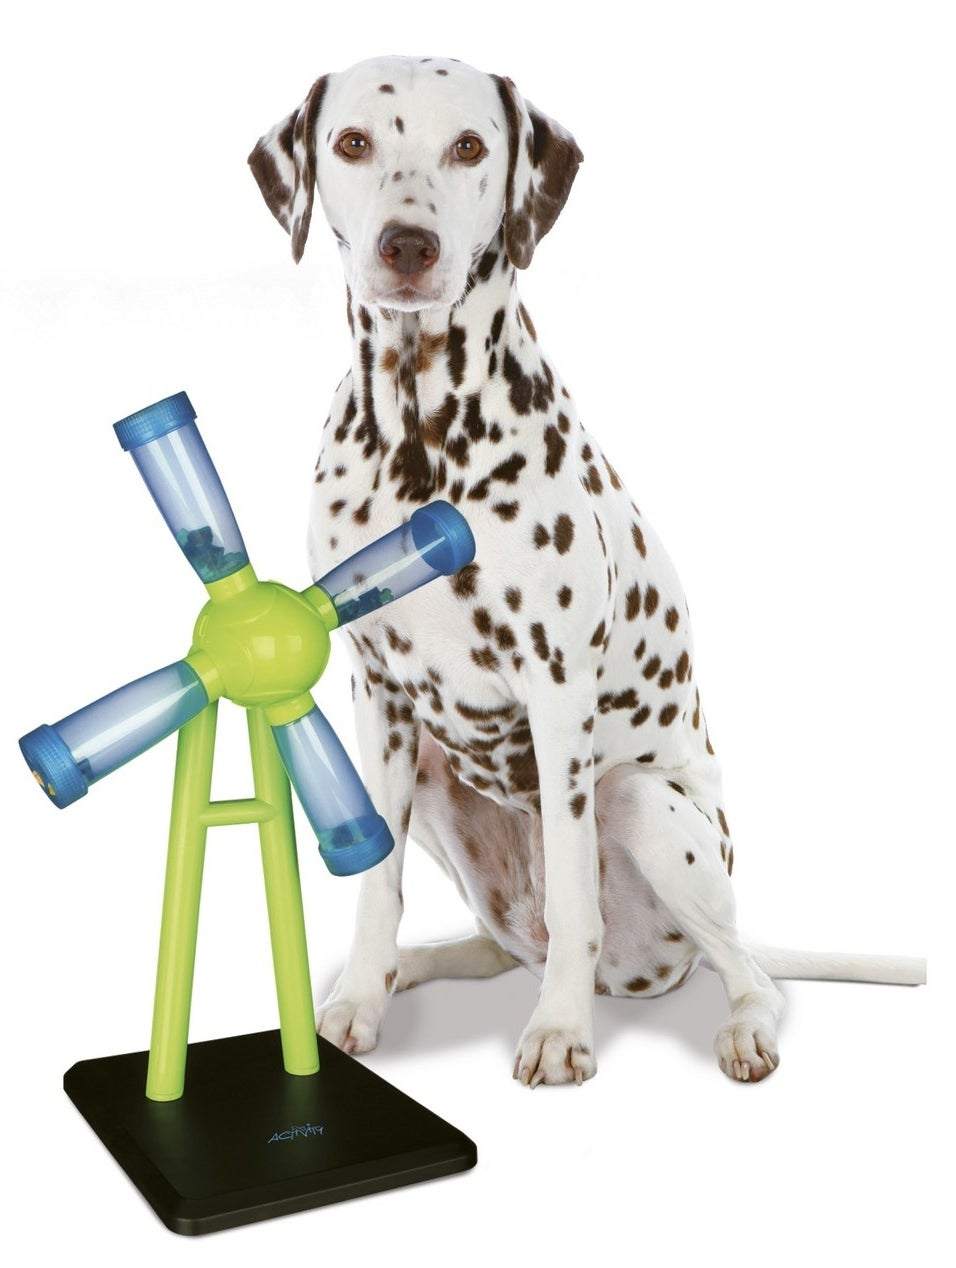 A windmill shaped feeder on a black base with four tubes that hold dry food. The dog must push the windmill around for the dry food to fall out.